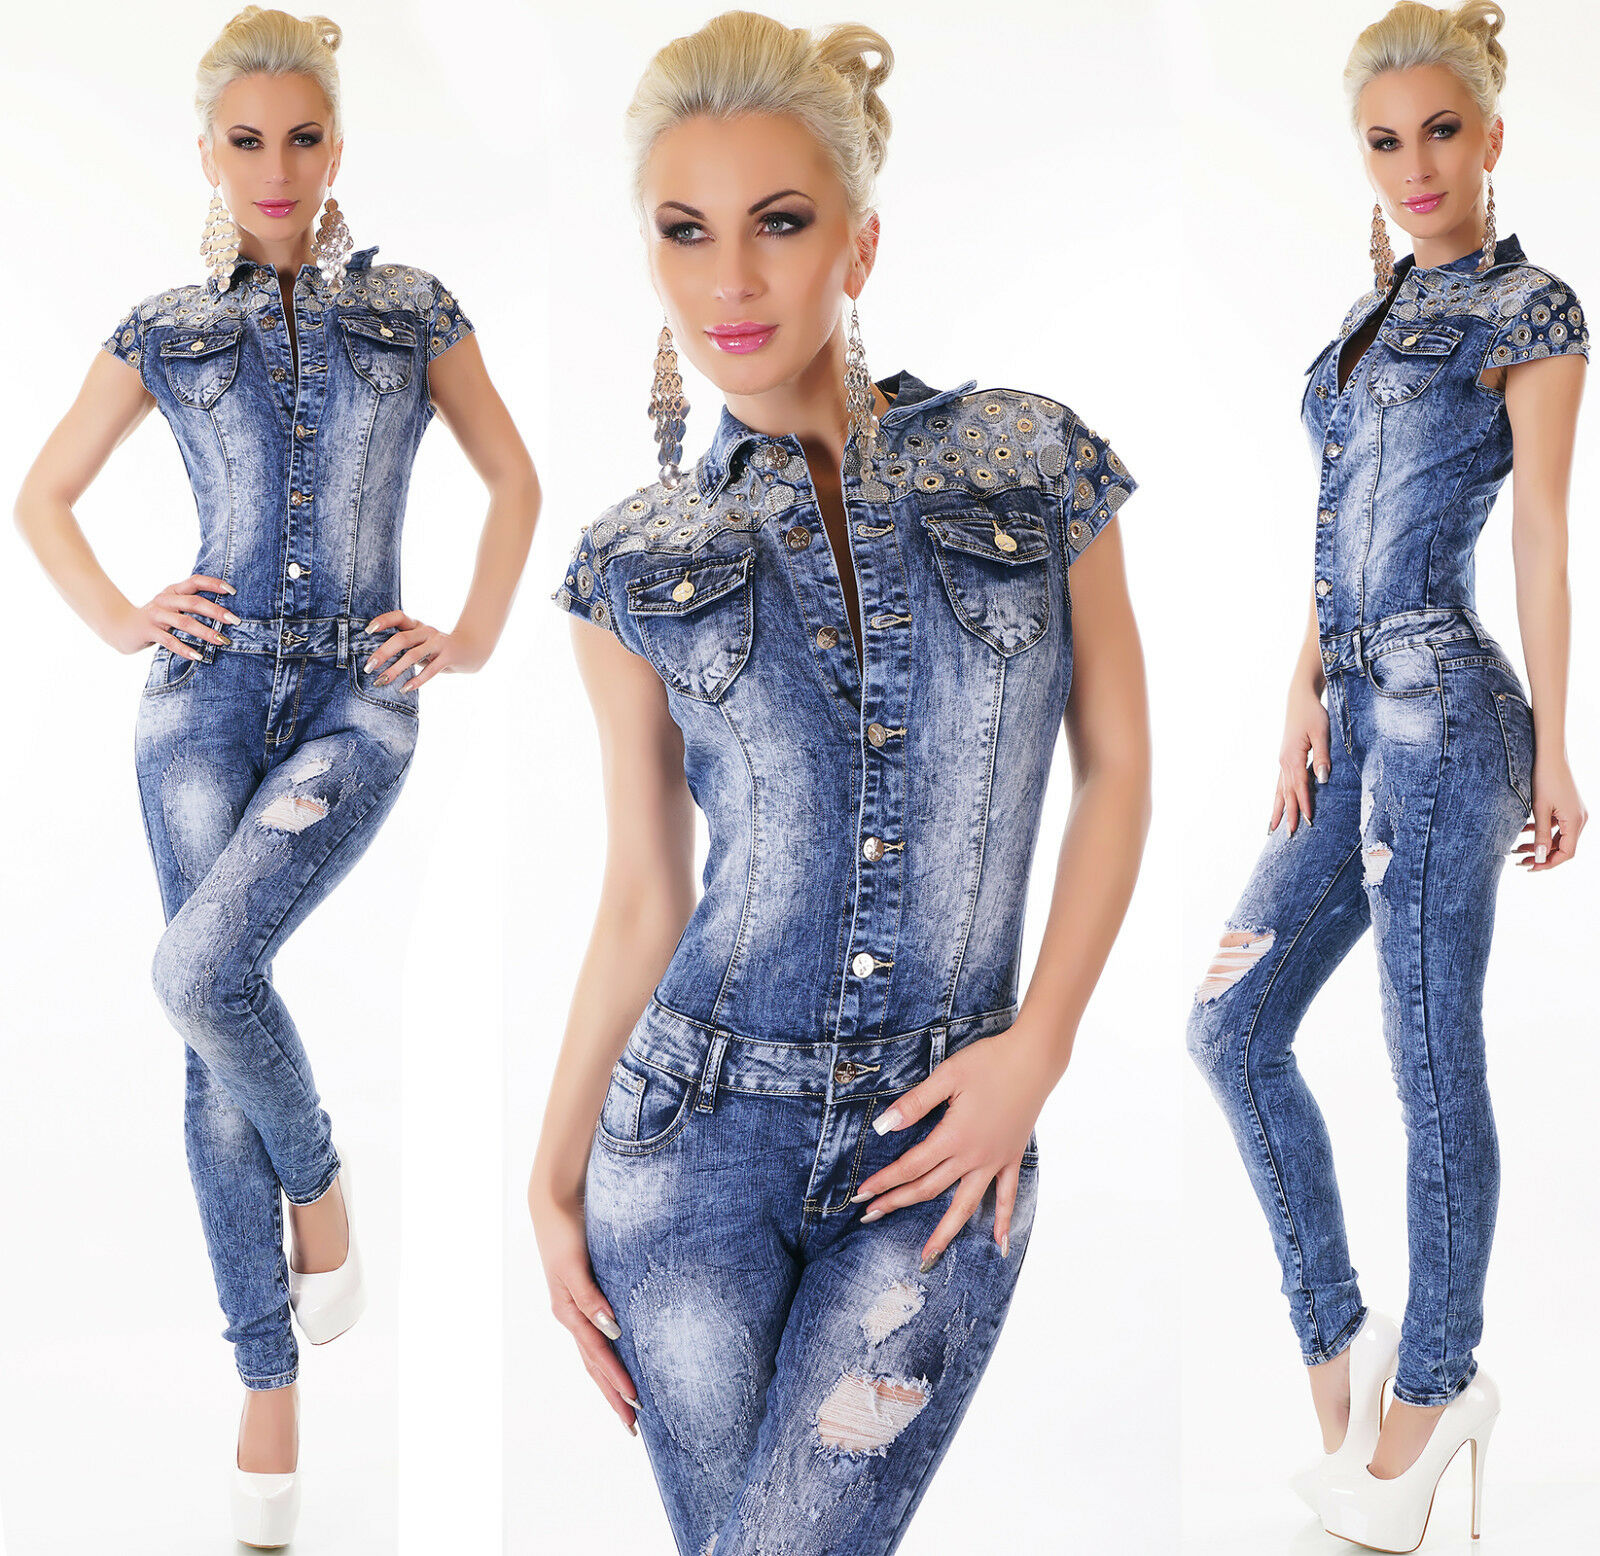 Women's Eyelet Distressed Stretch Denim Jeans Jumpsuit - XS S M L XL